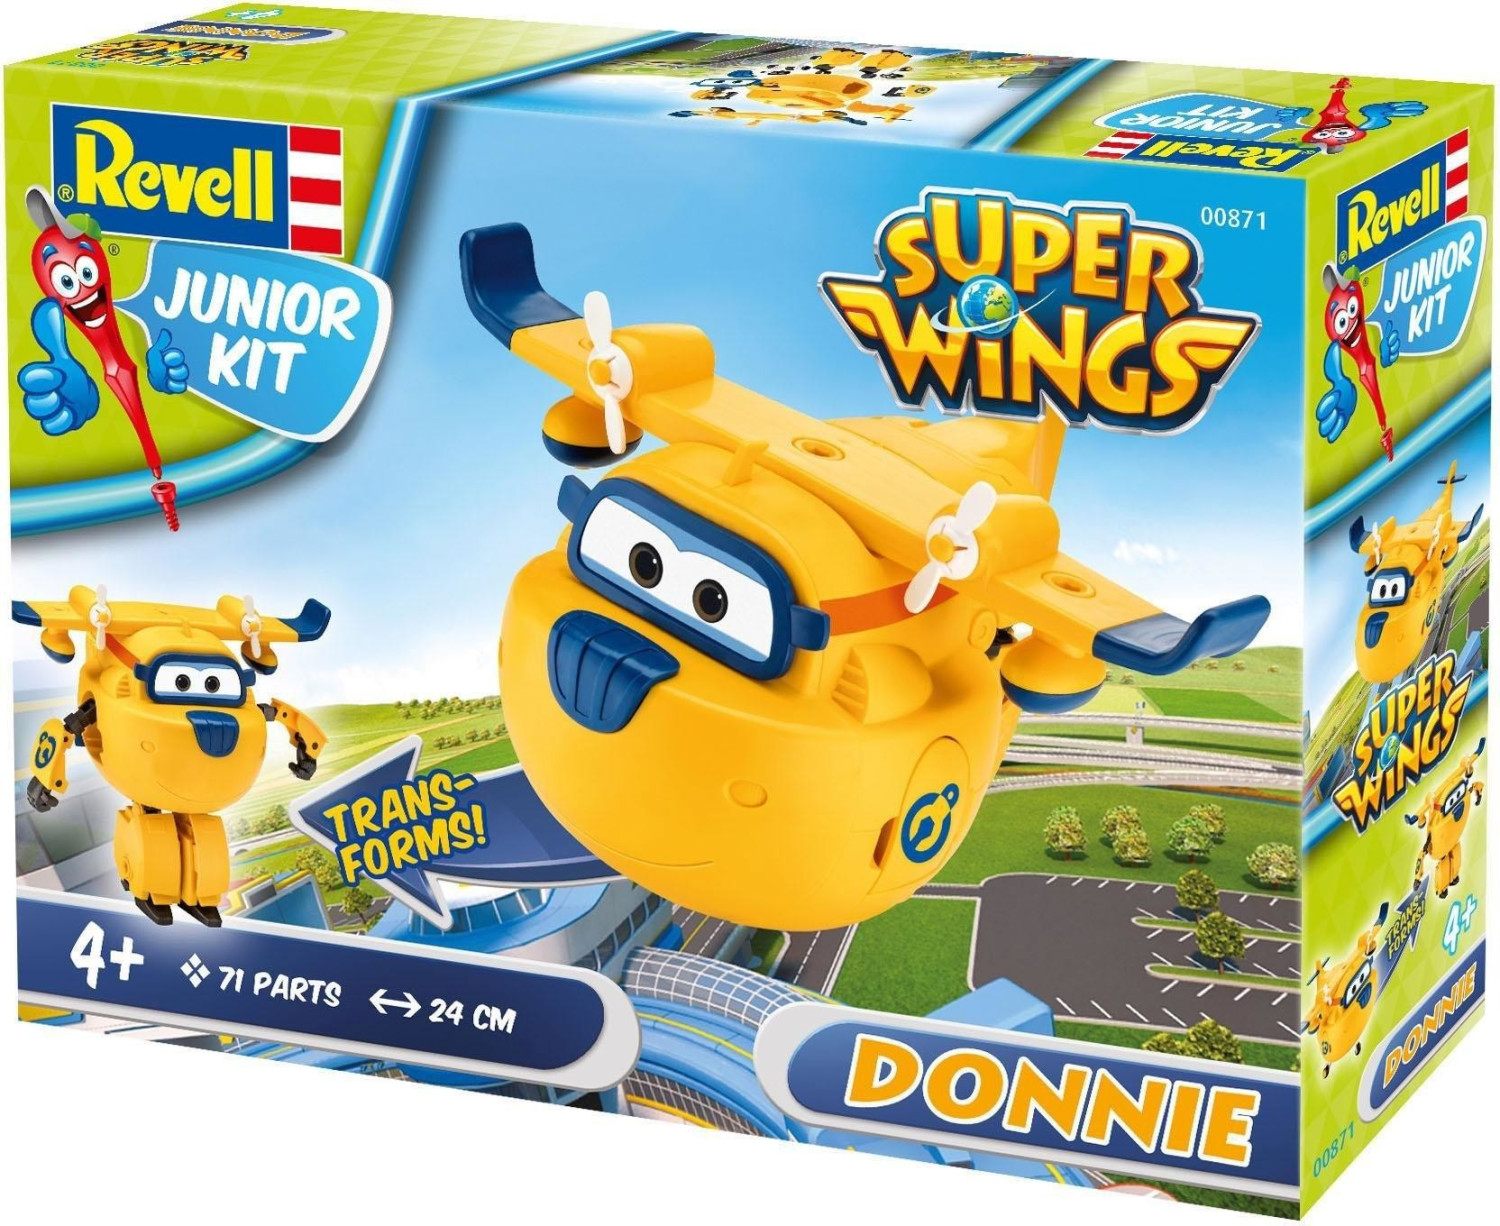 revell junior kit super wings donnie 00871 ab € 1779